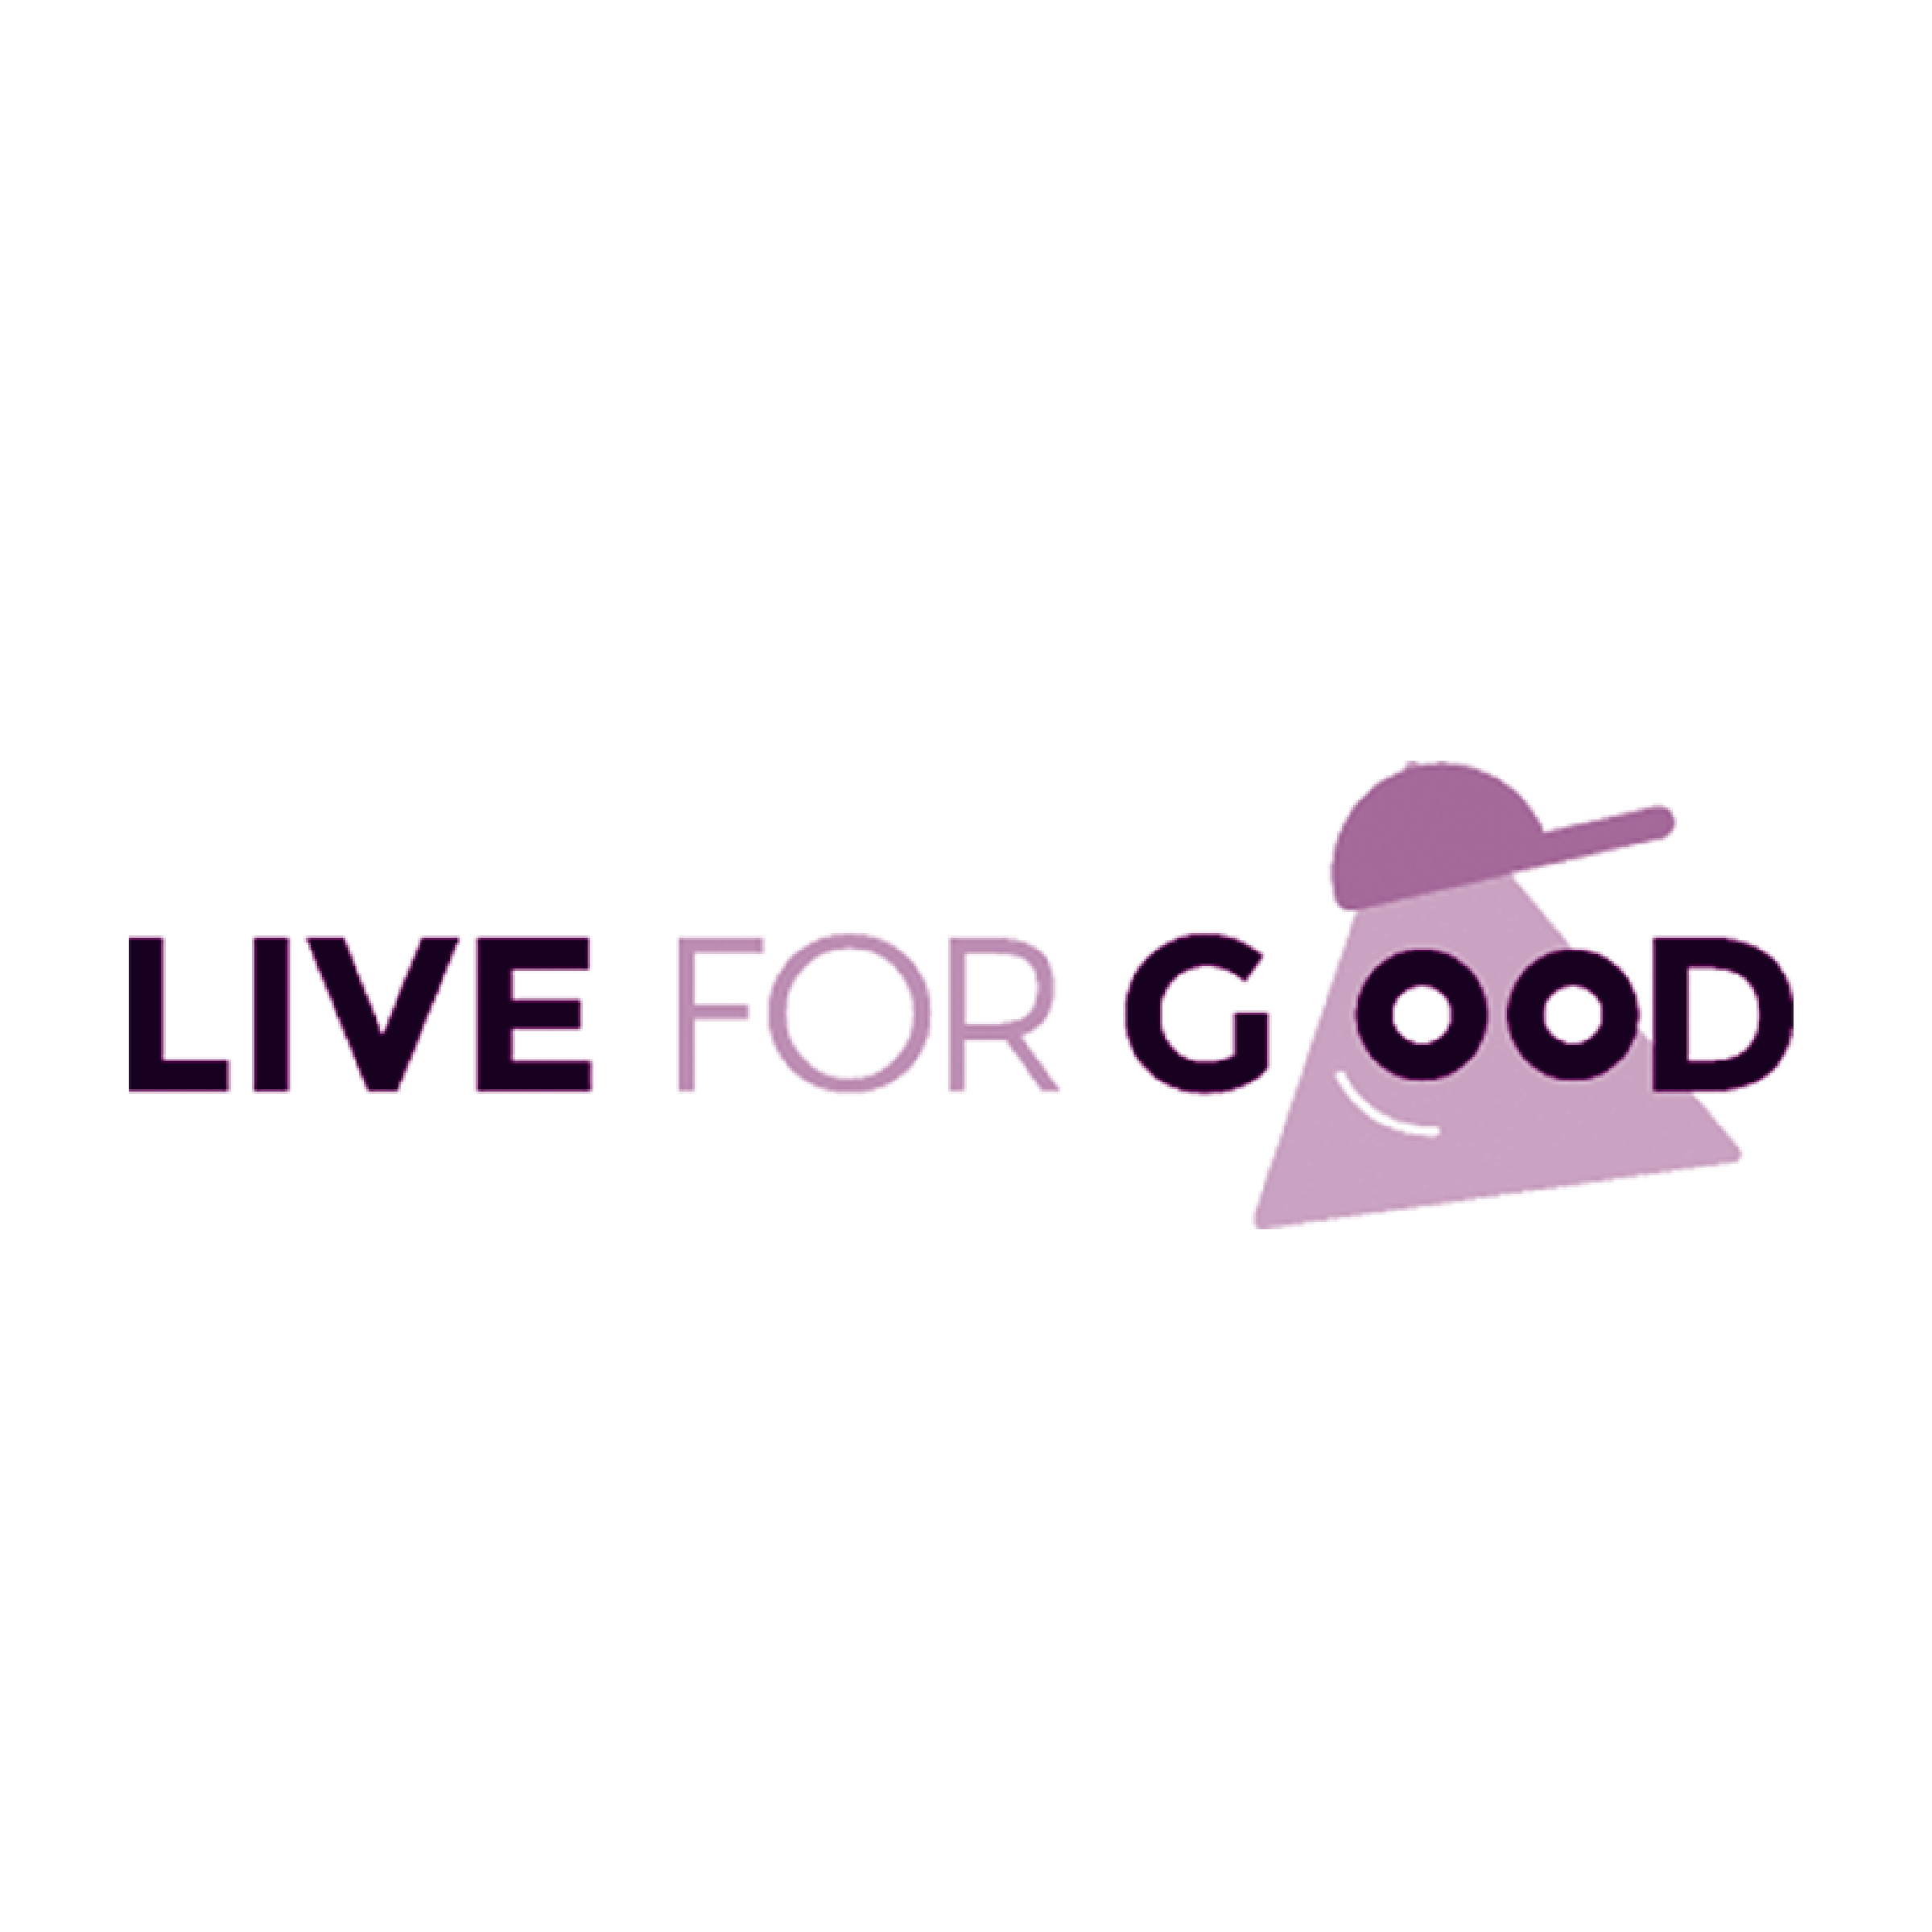 Live For Good